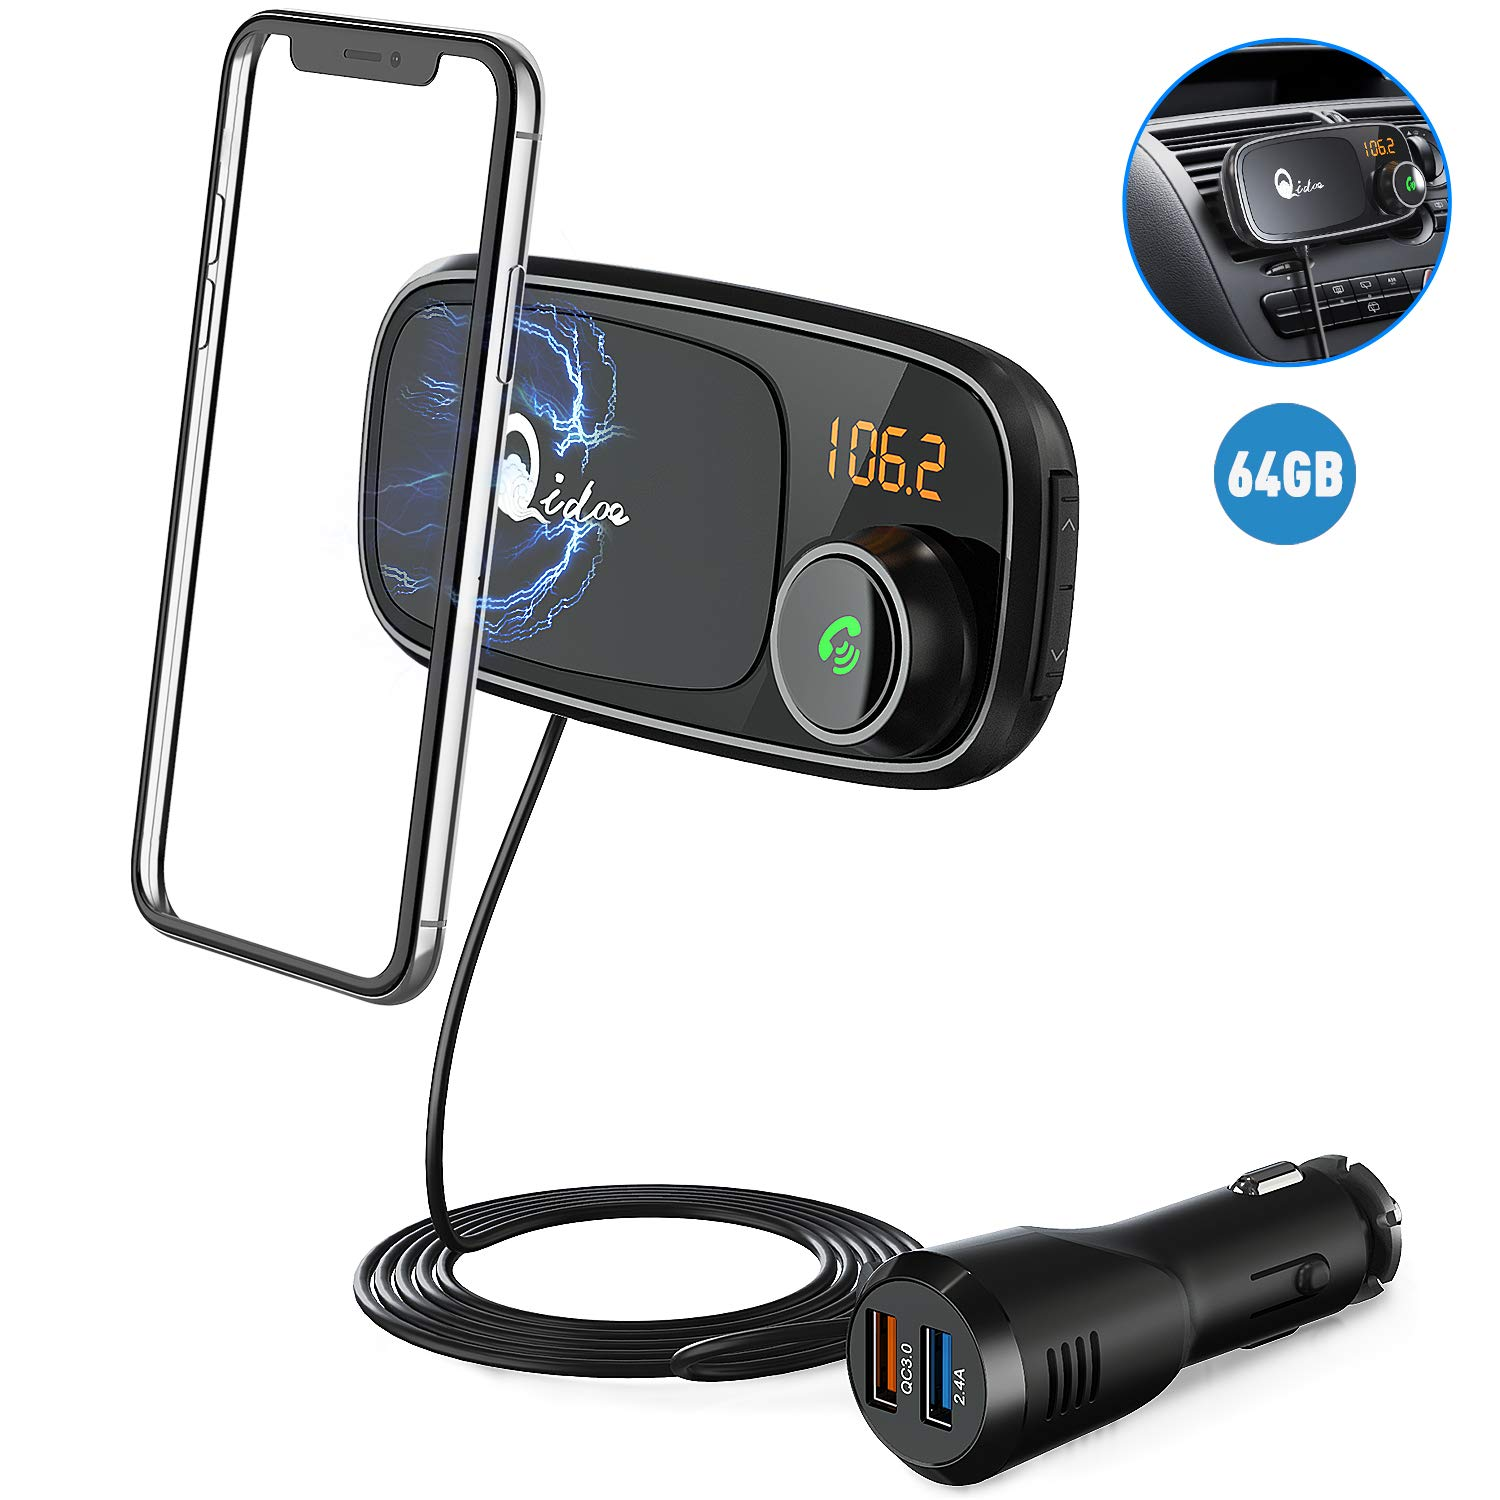 Bluetooth FM Transmitter with Car Mount, QC 3.0 Wireless FM Radio Adapter MP3 Music Player Car Kit with Hands Free Call, Dual USB Bluetooth Cigarette Lighter Car Charger, 1M Cable, Magnetic Holder by Qidoe